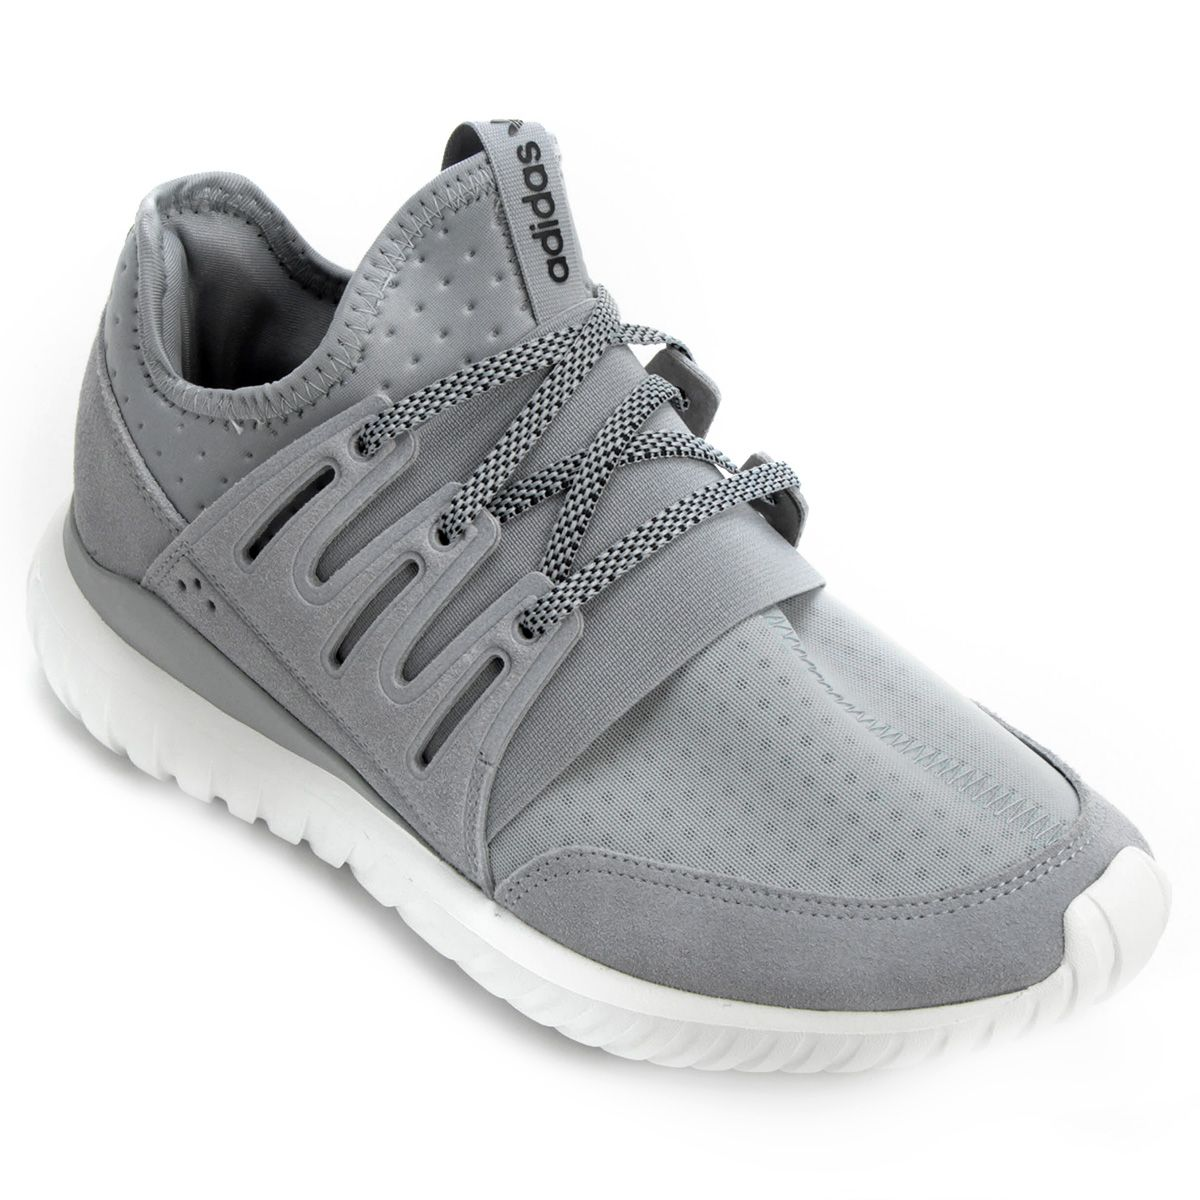 Tênis Adidas Tubular Sneakers Radial Cinza | NetZapatos | Sneakers Tubular n Outfits f691e0